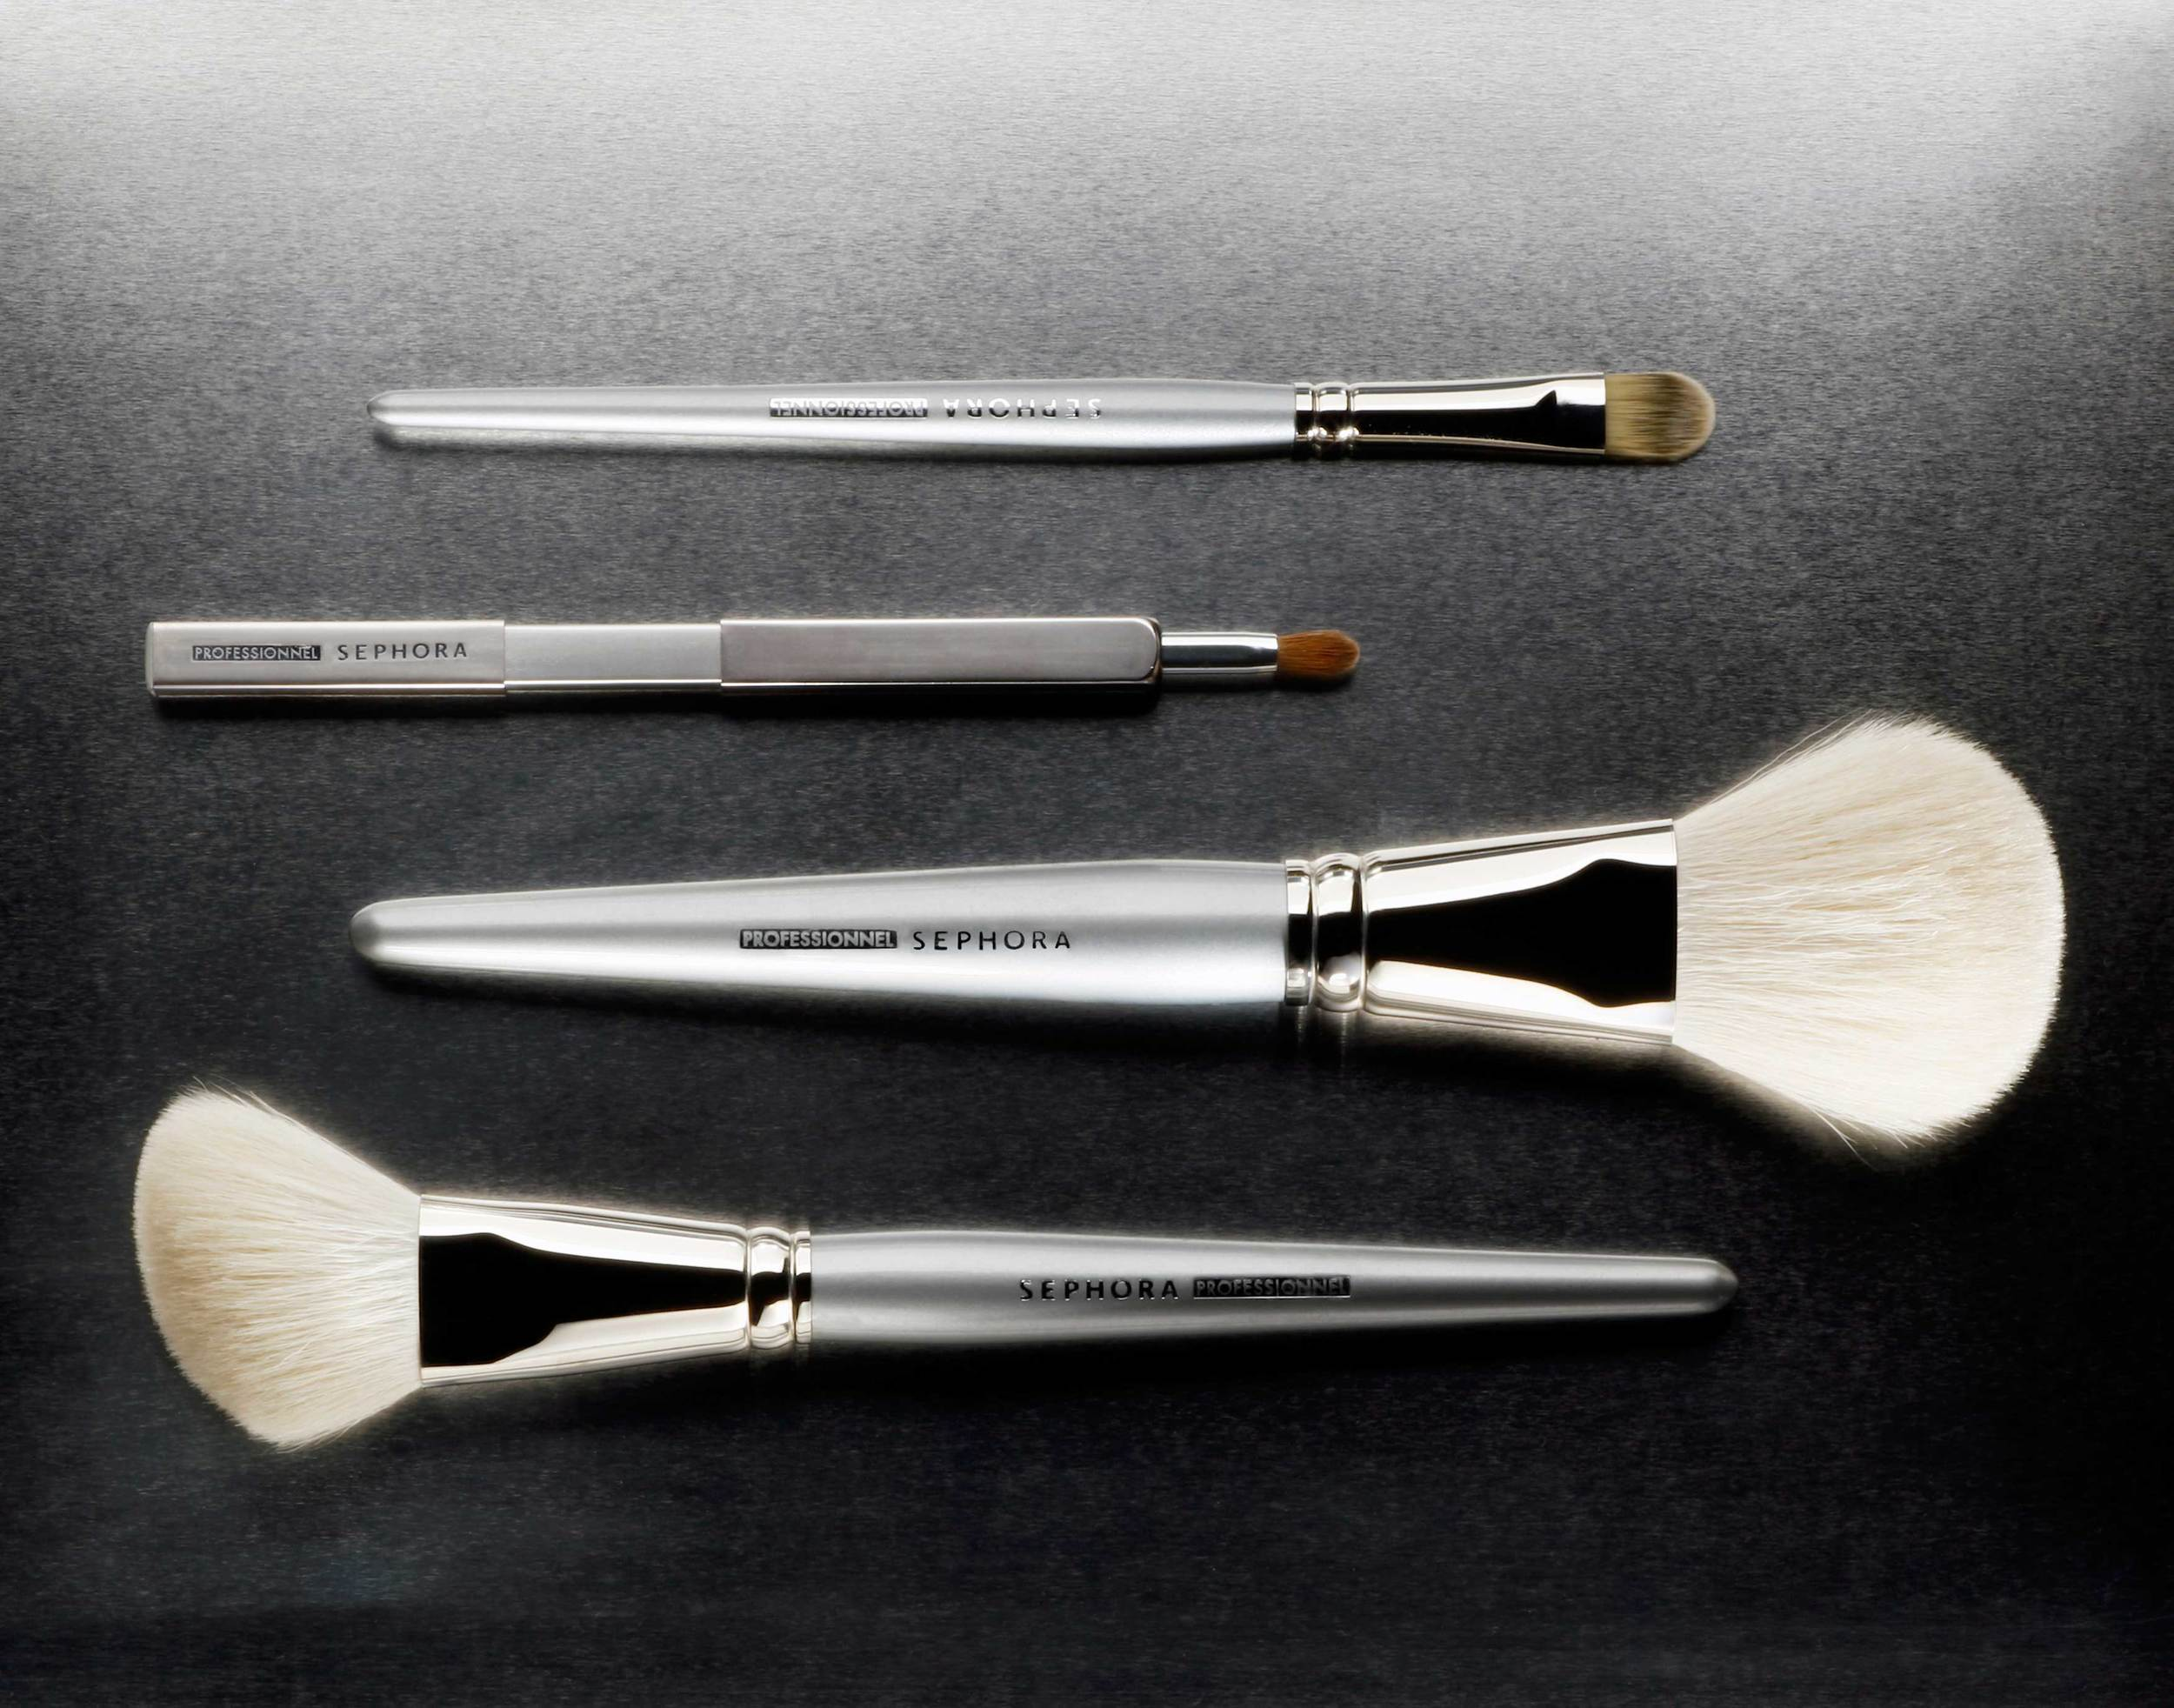 Brushes-on-Silver-Tray.jpg